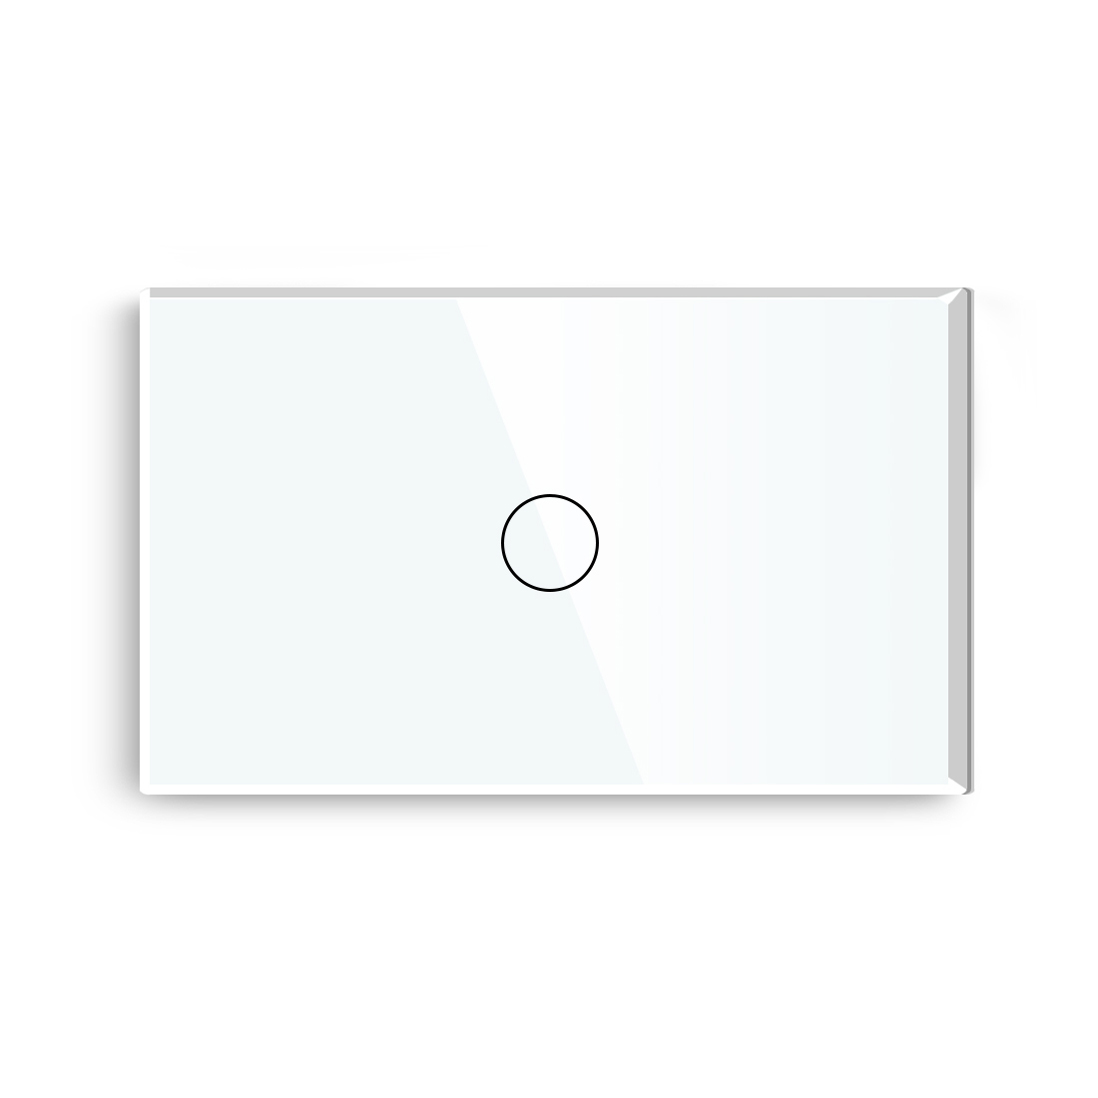 4 way touch light switch